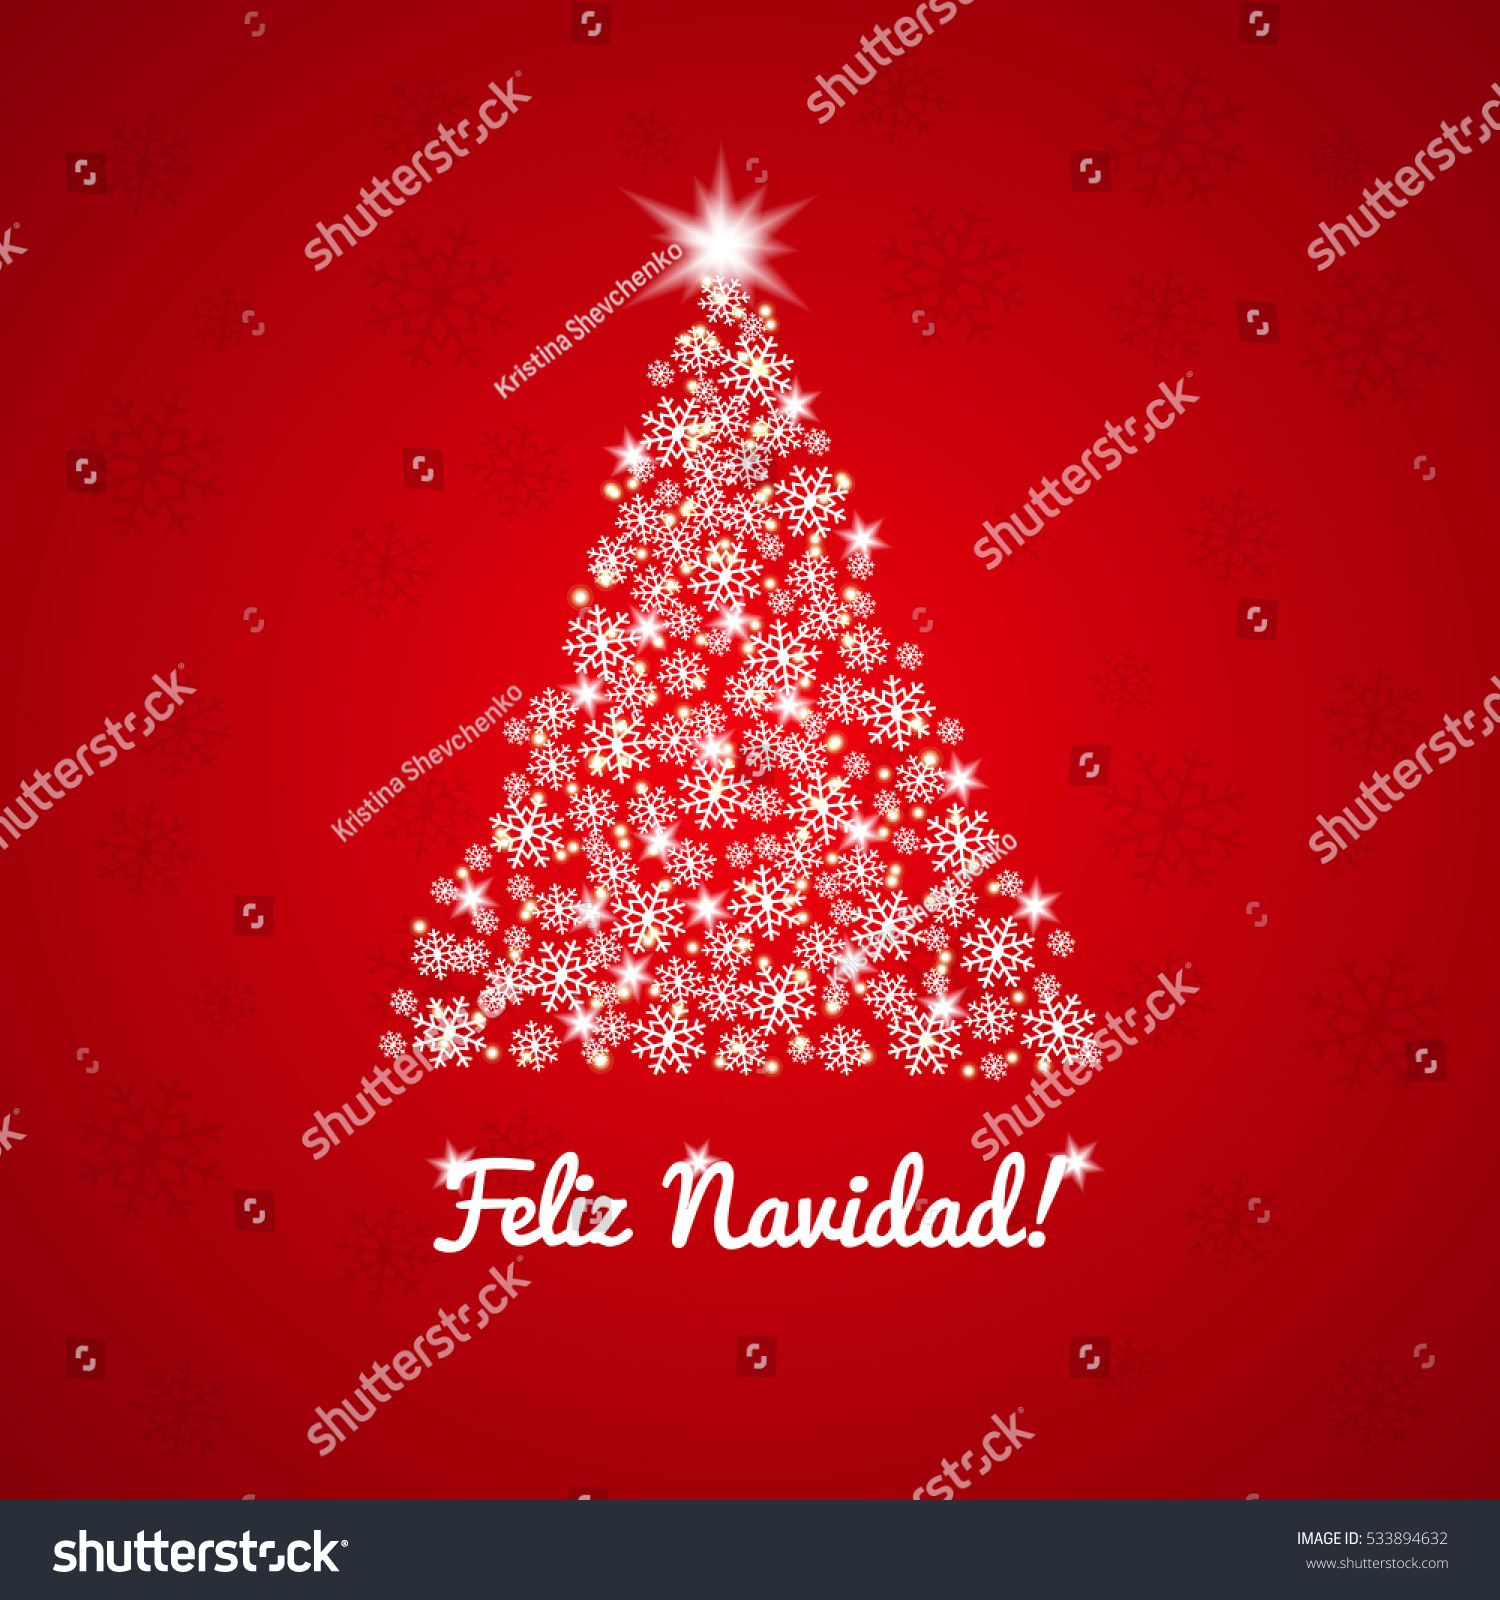 Christmas greeting card messages spanish all ideas about christmas greeting card spanish greeting stock photo 533894632 shutterstock kristyandbryce Images